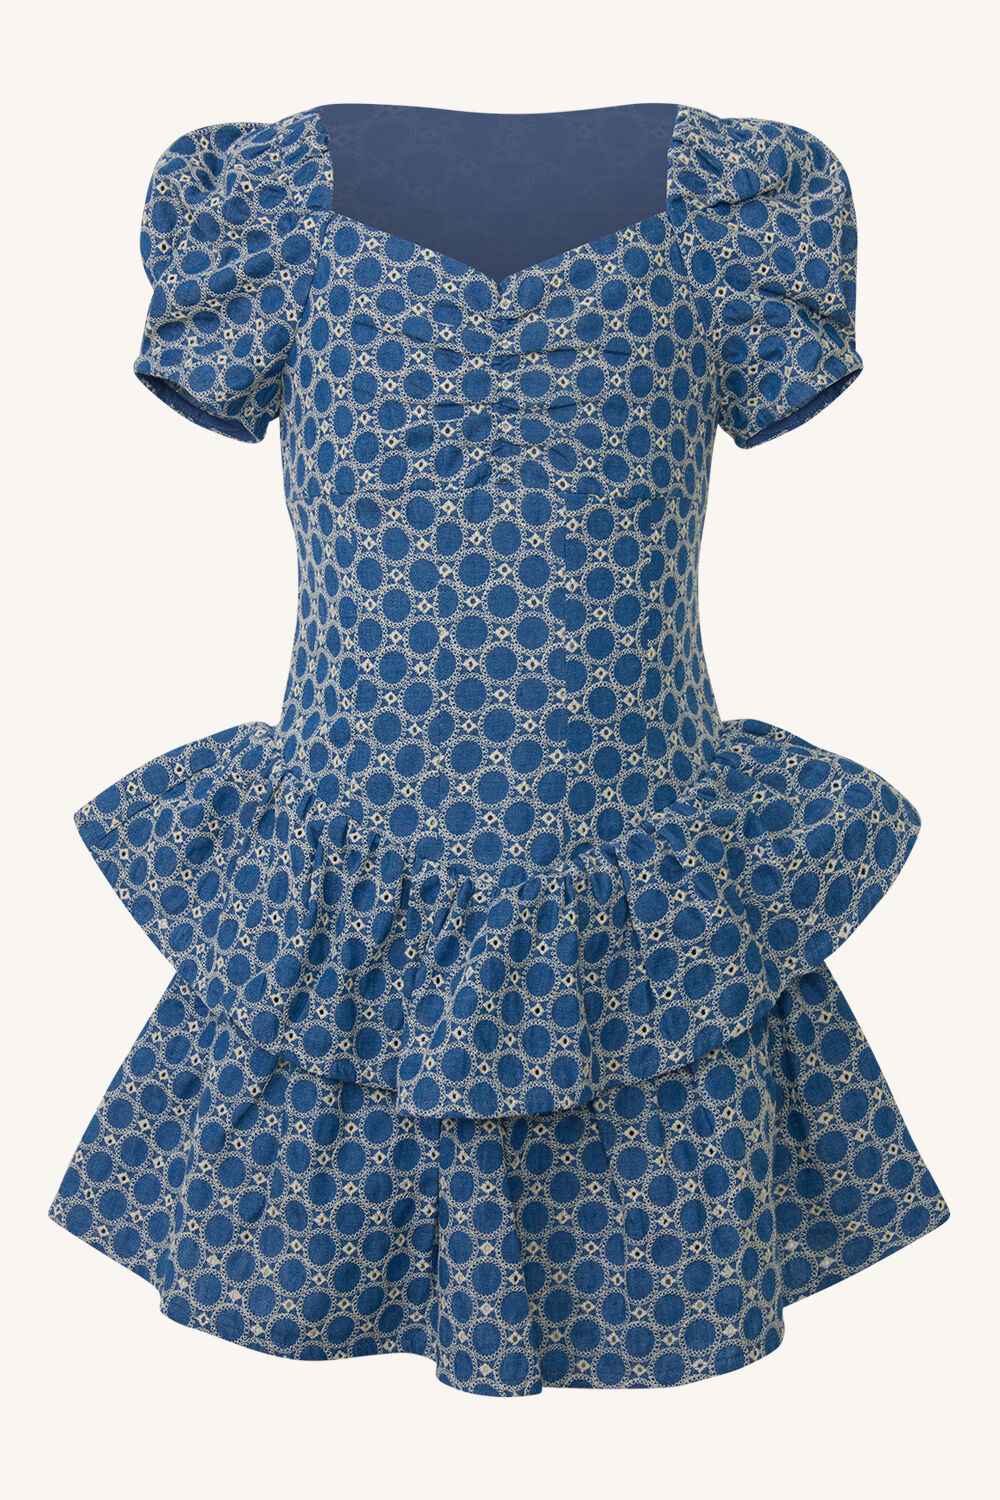 GIRLS BRODERIE CORSET DRESS in colour CHAMBRAY BLUE